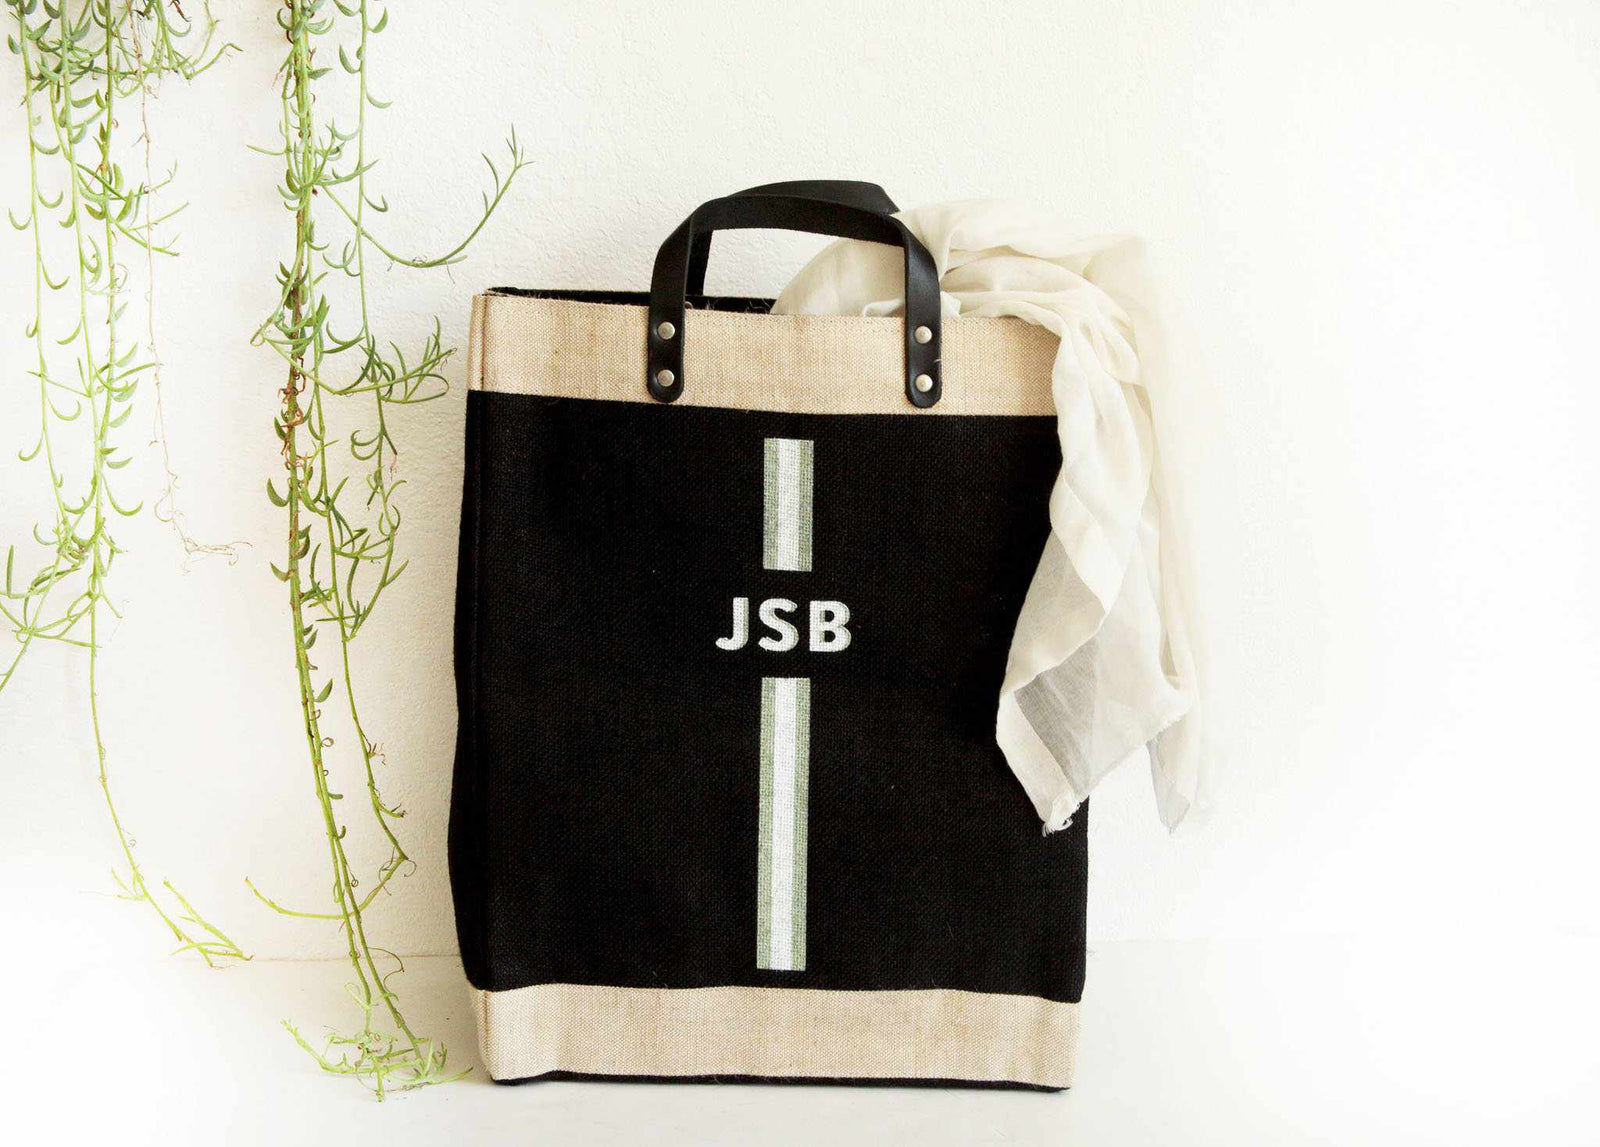 Customize Your Striped Market Bag Monogram in Black